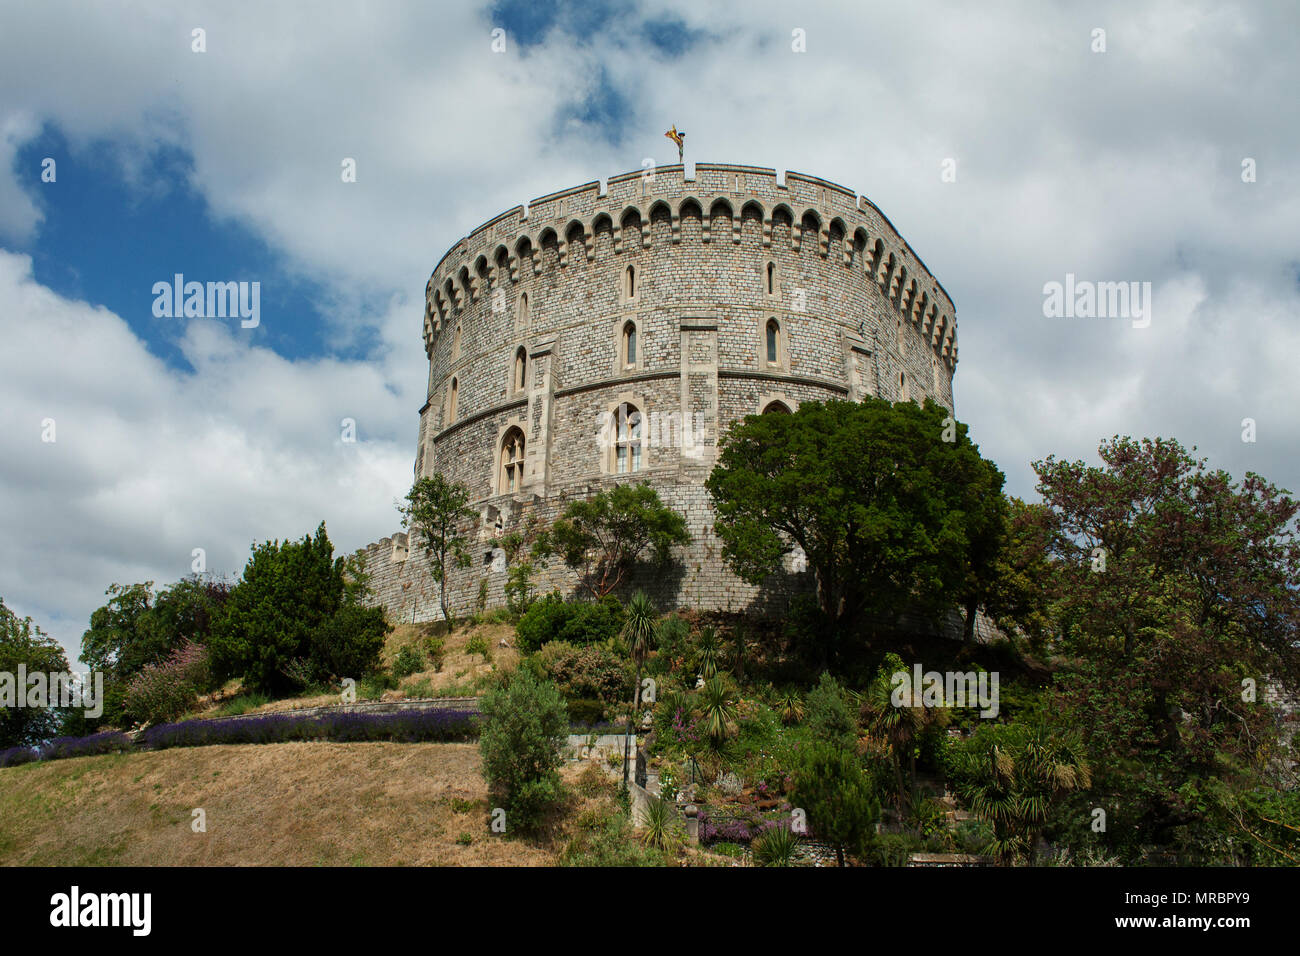 Round tower in Windsor castle, residence of the british royal family in England, UK. - Stock Image